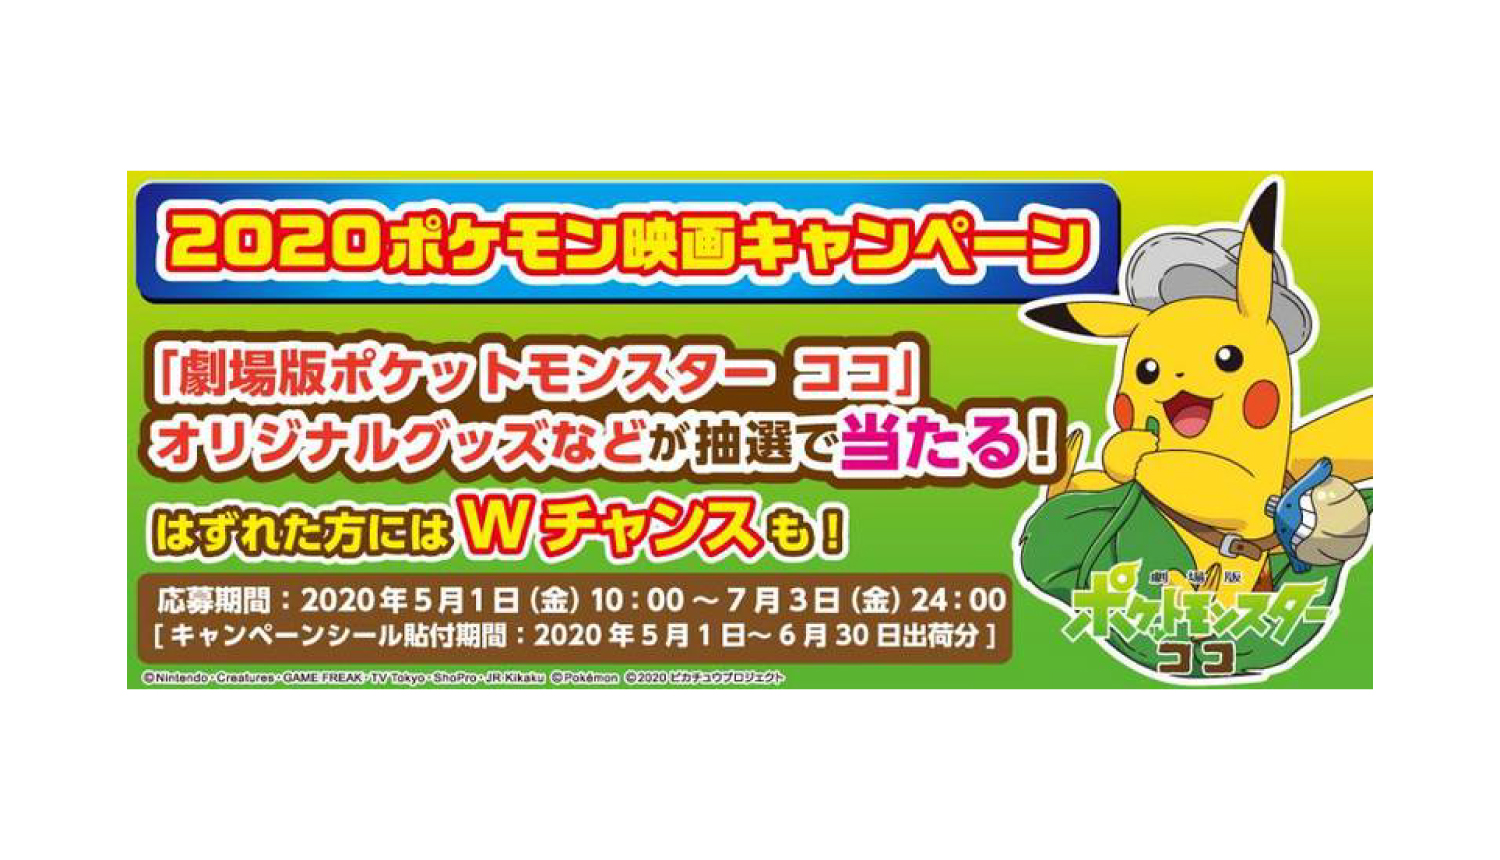 Pokemon The Movie Coco Promoted With Merchandise Prize Campaign